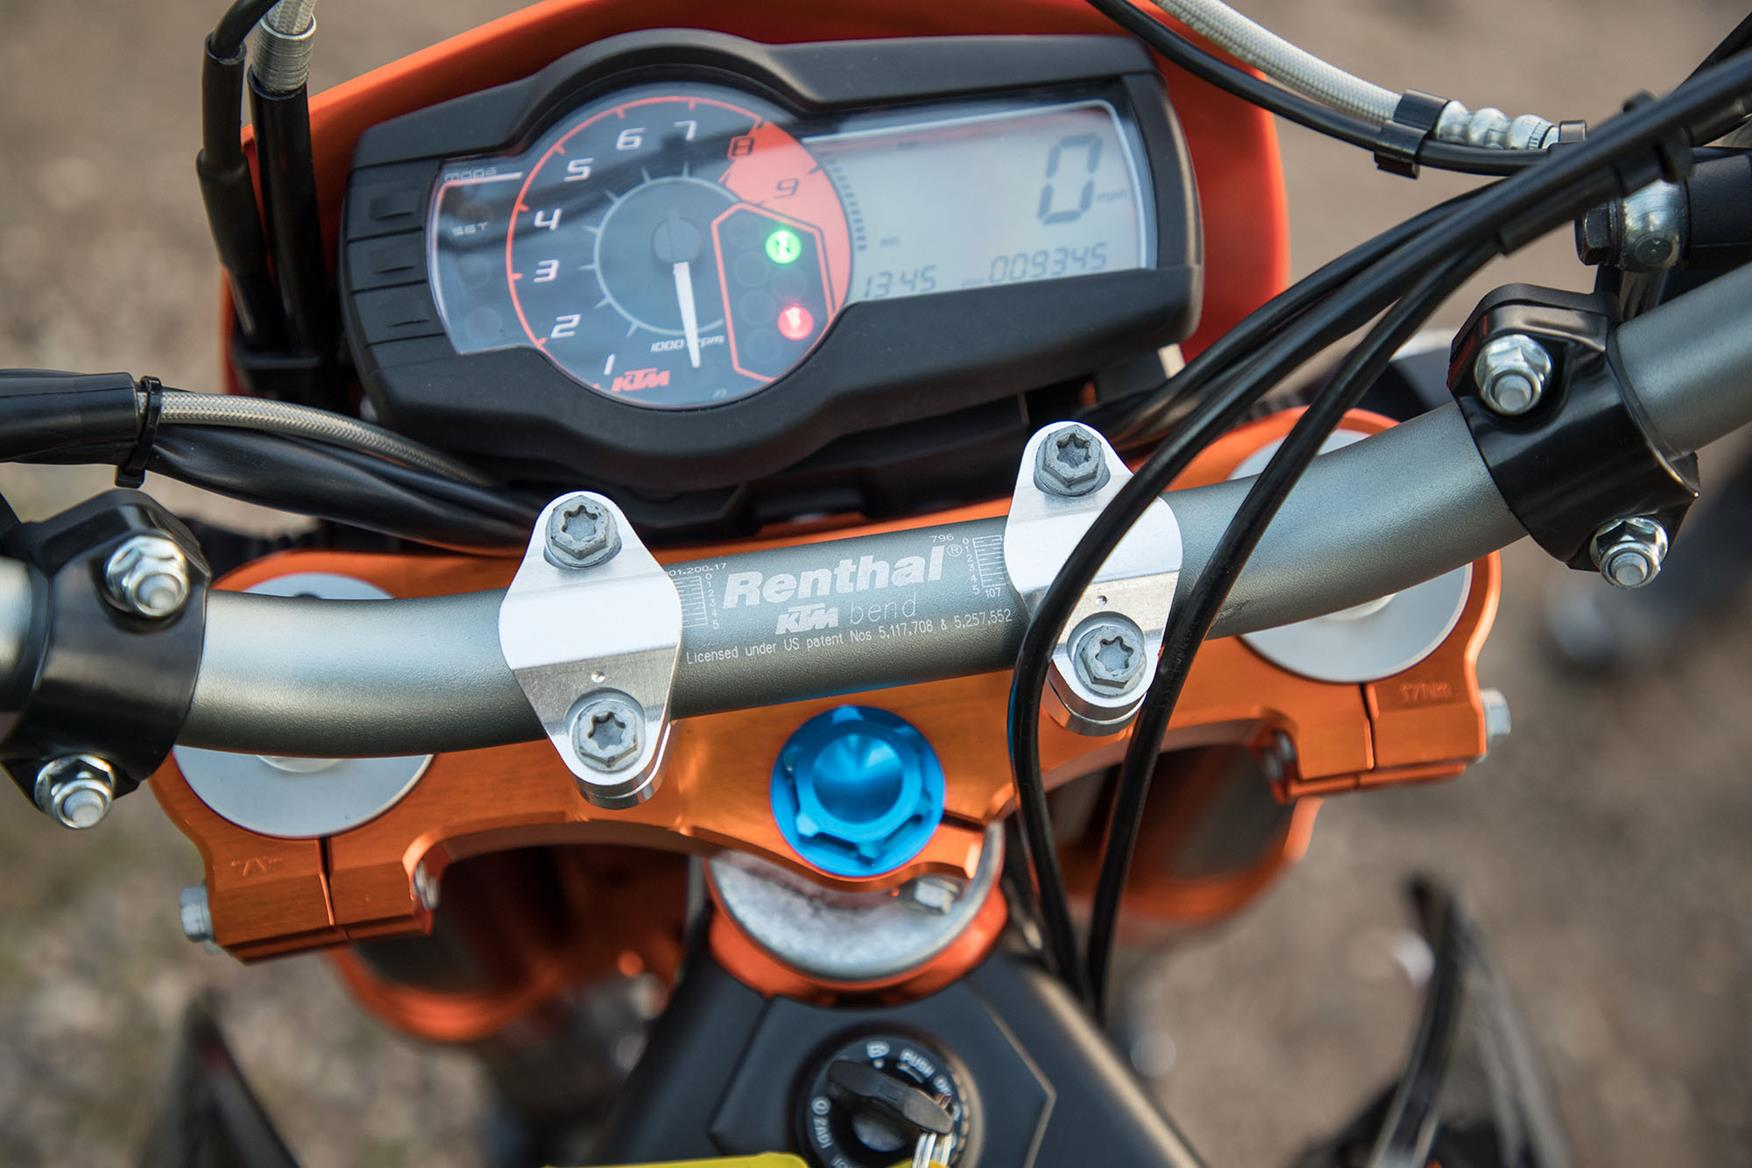 KTM 690 SMC R yoke set costs £400